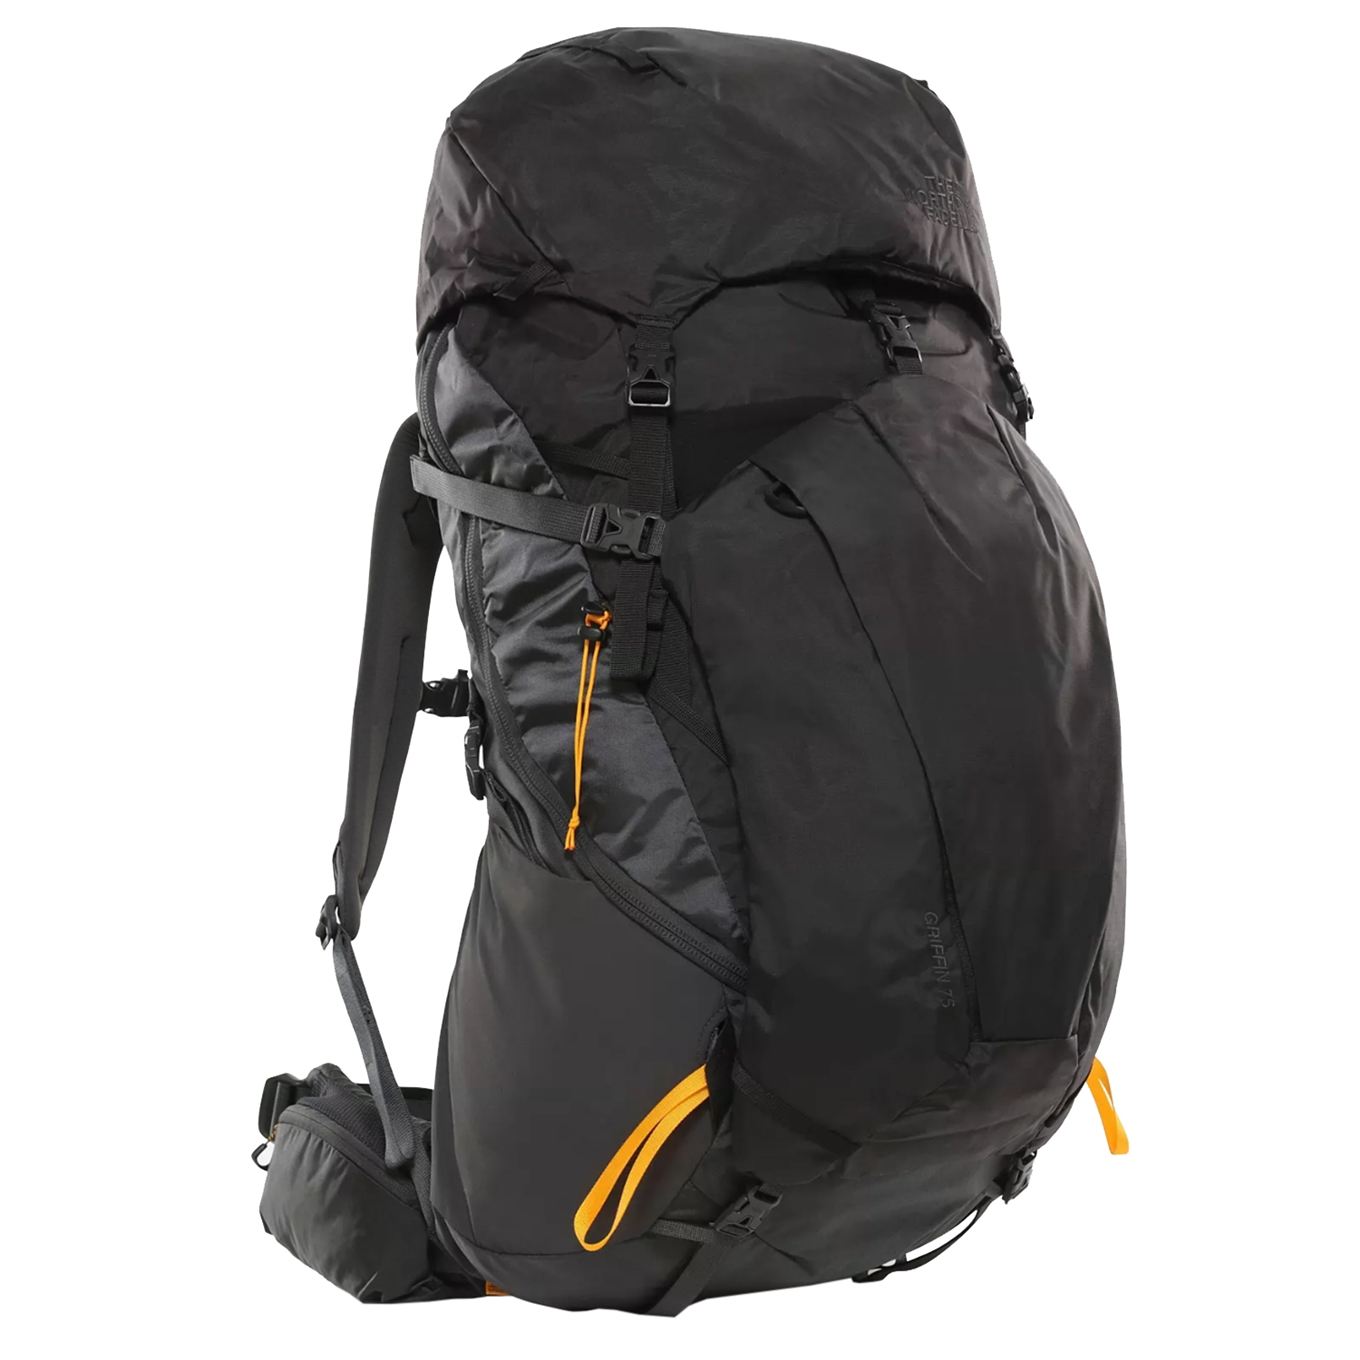 The North Face Griffin Griffin Backpack S/M asphalt grey / tnf black backpack <br/></noscript><img class=